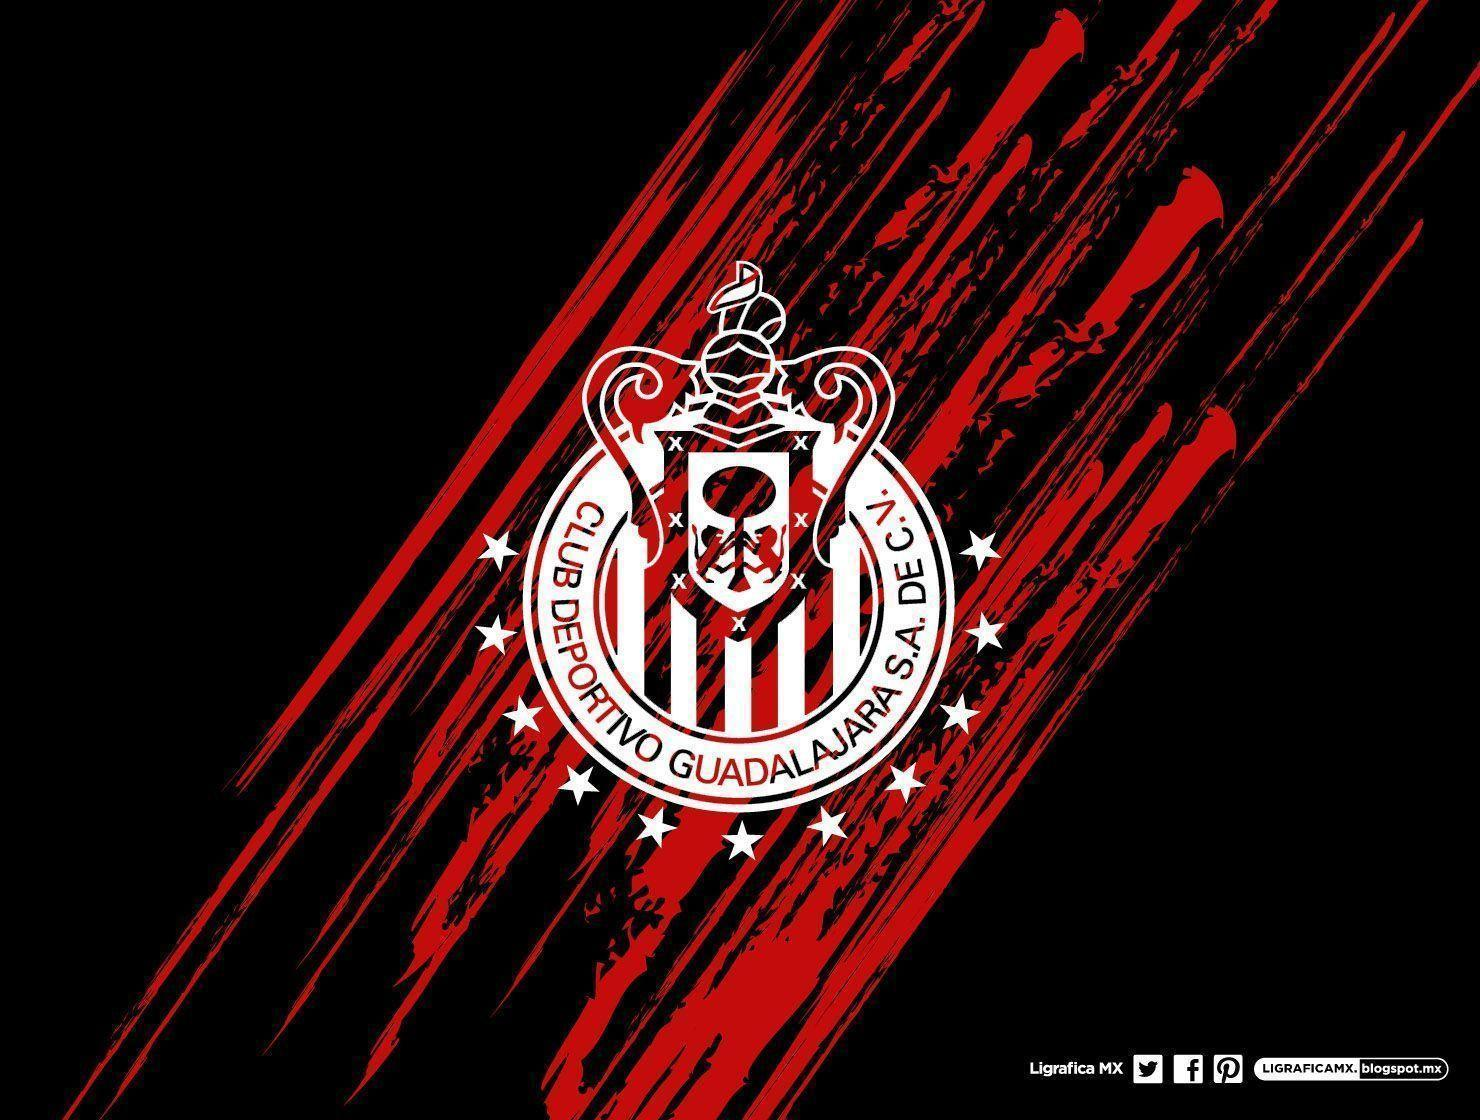 1480x1120 - C.D. Guadalajara Wallpapers 3